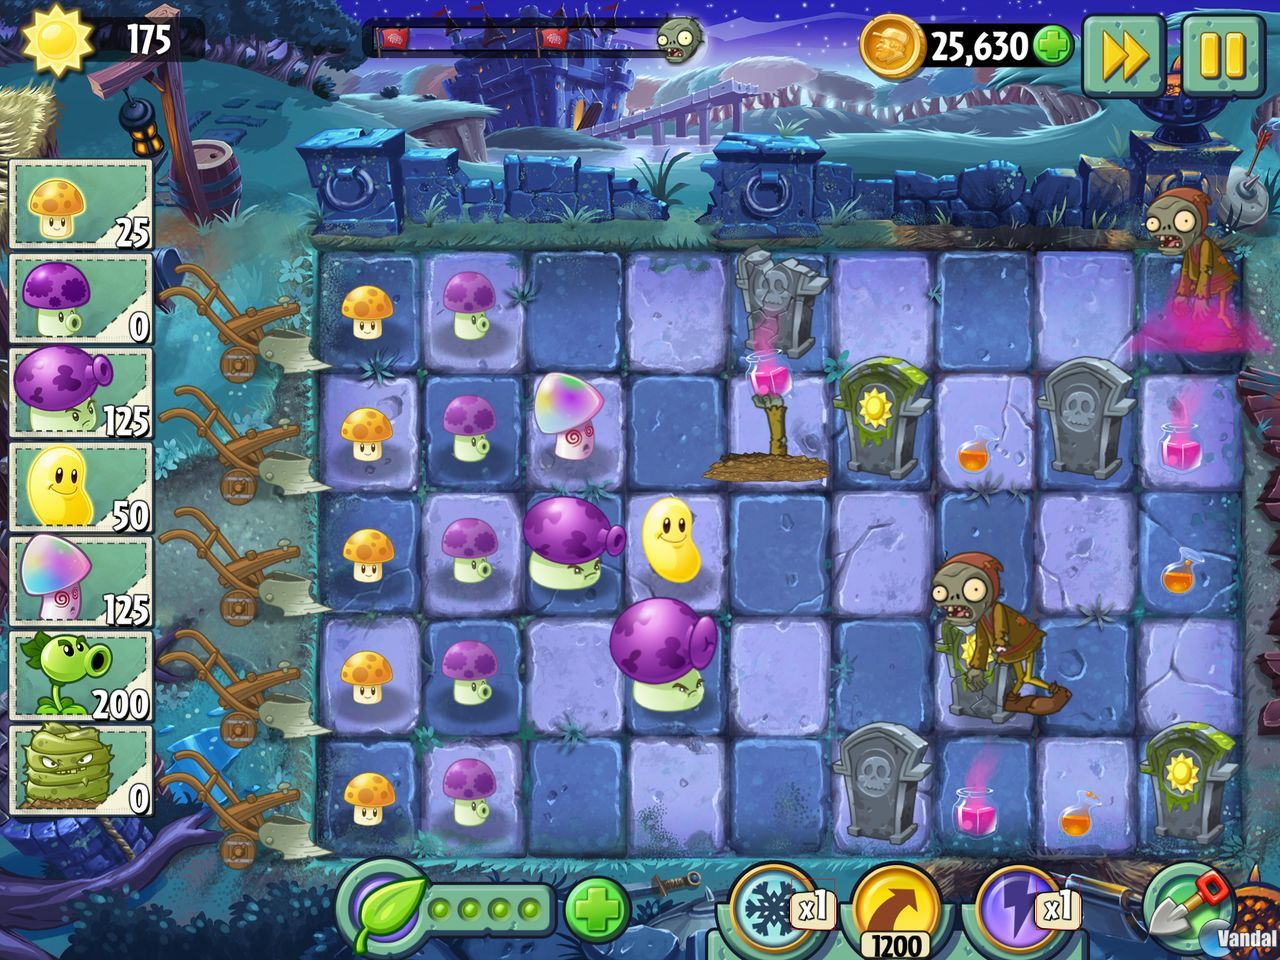 Plants vs zombies 2 visitará la edad media